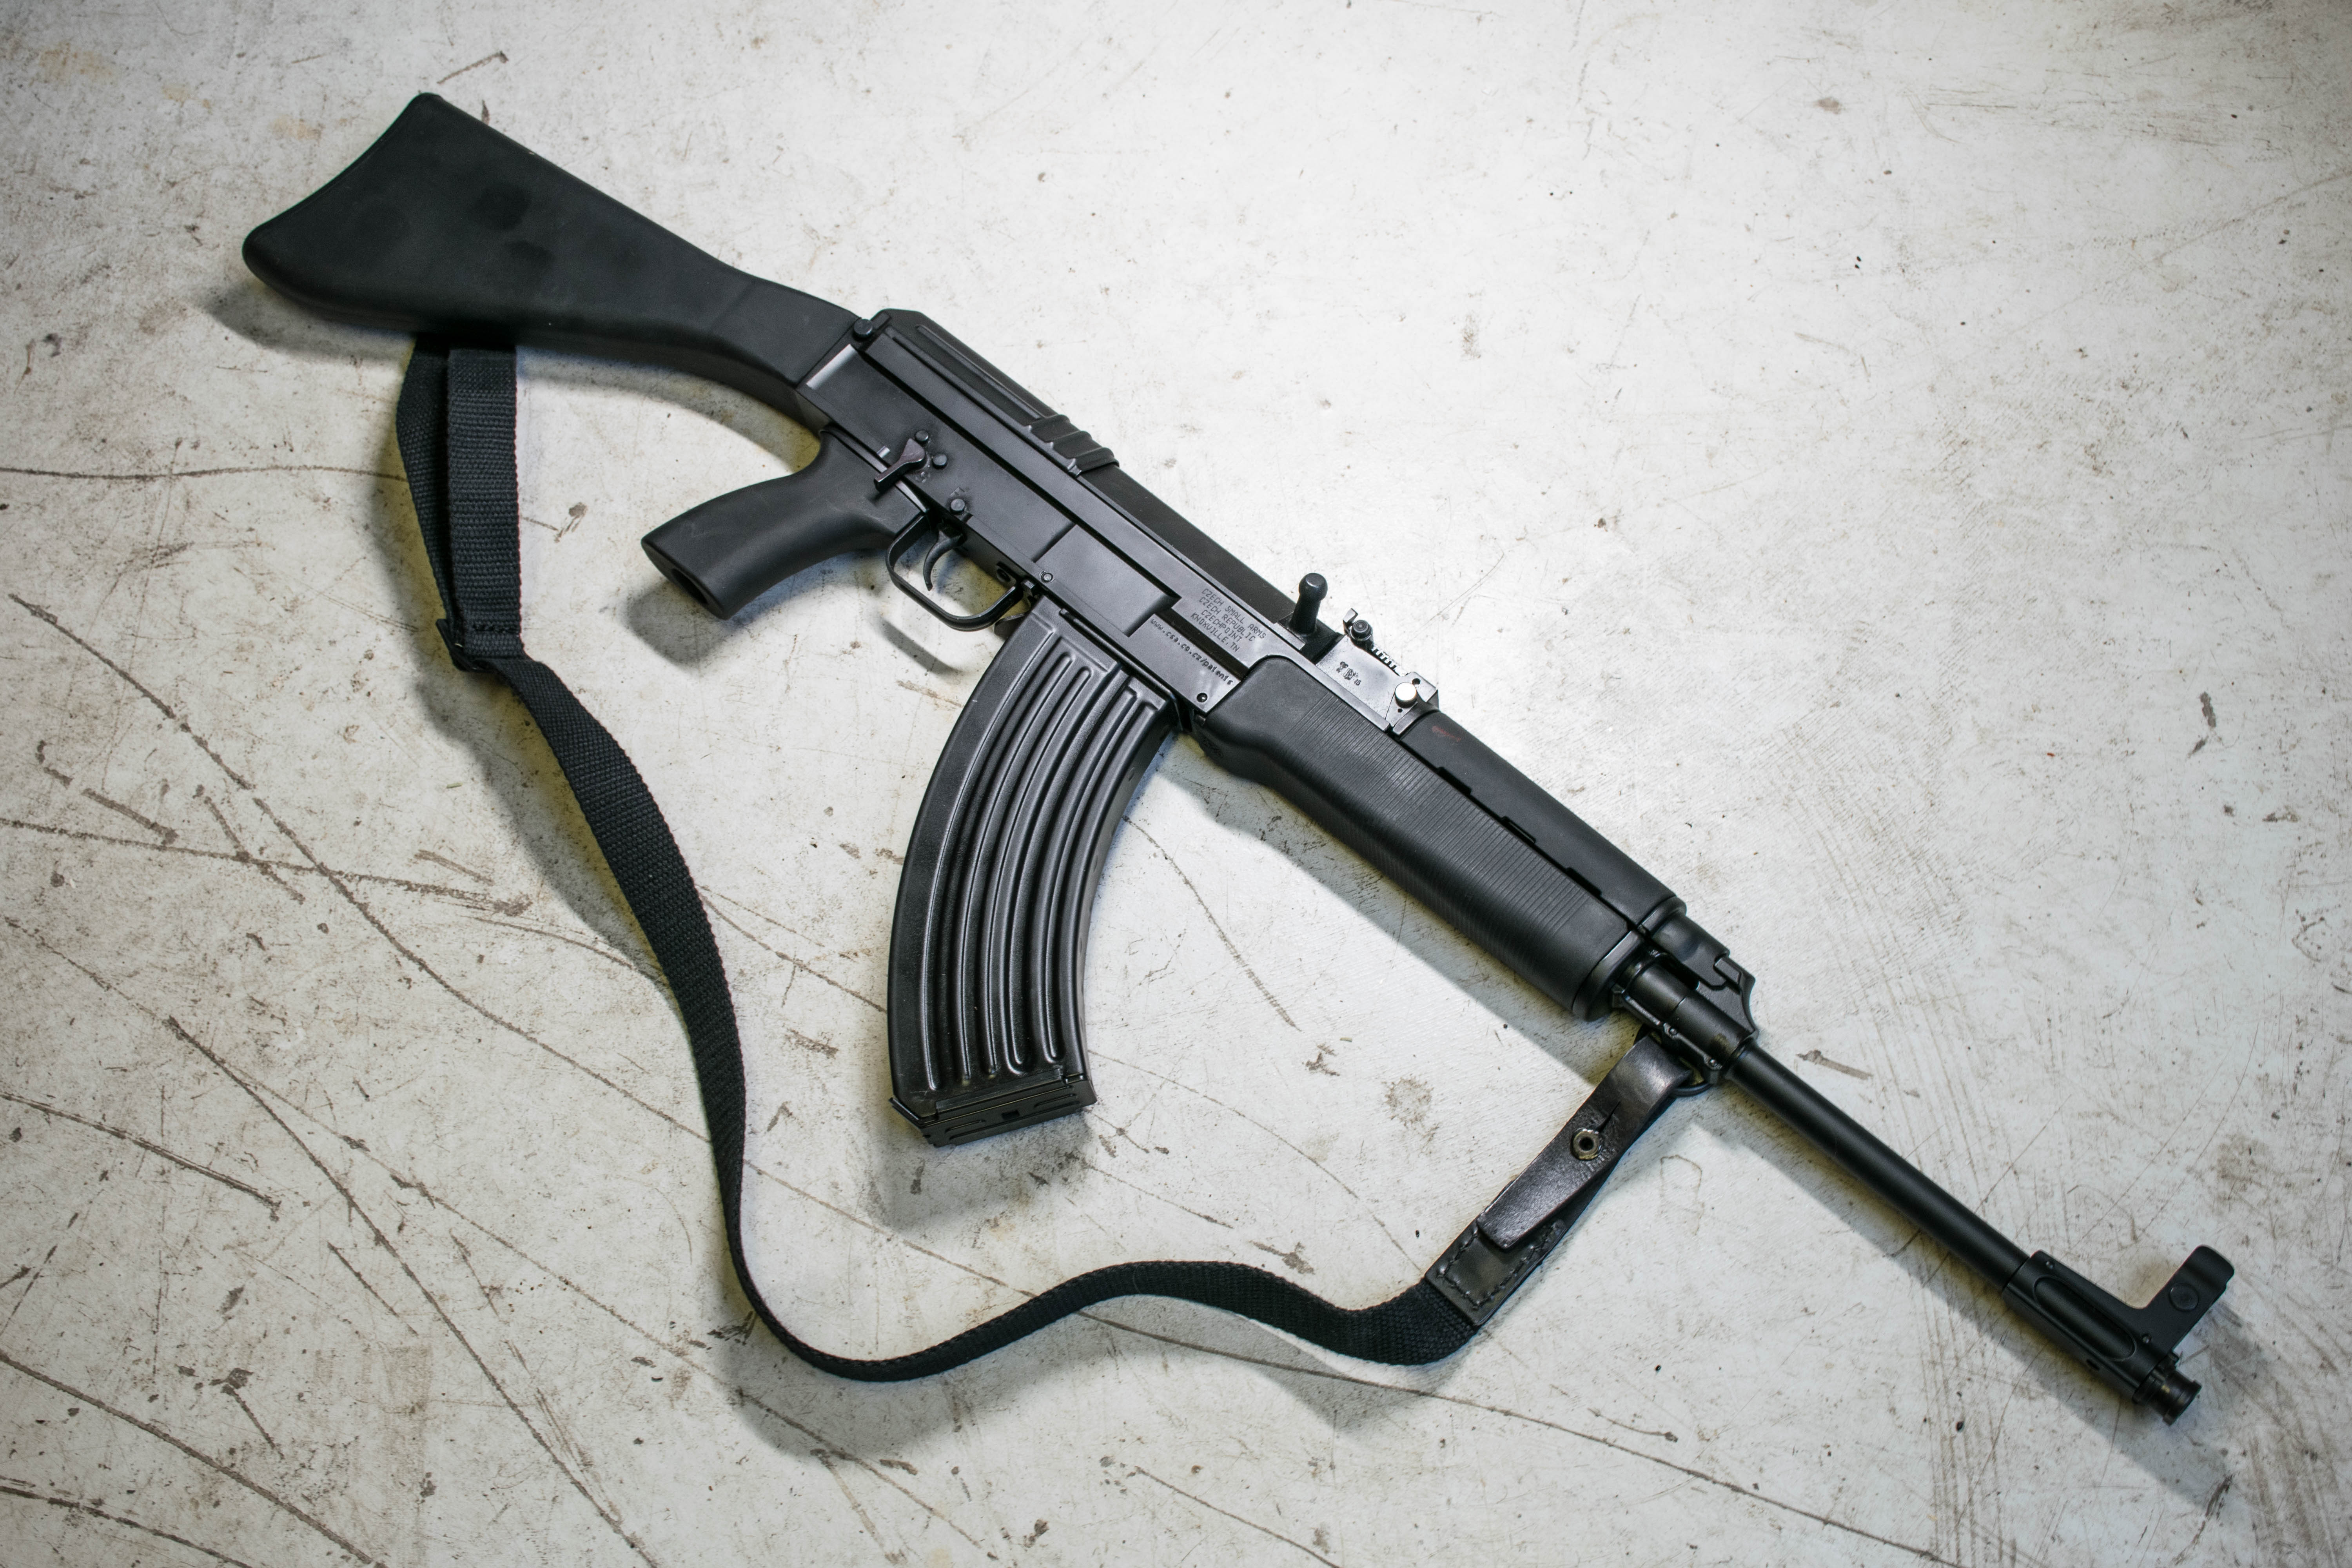 Czech Small Arms Czechpoint Usa Sa Vz 58 Rifleoc 187 Imgday Com